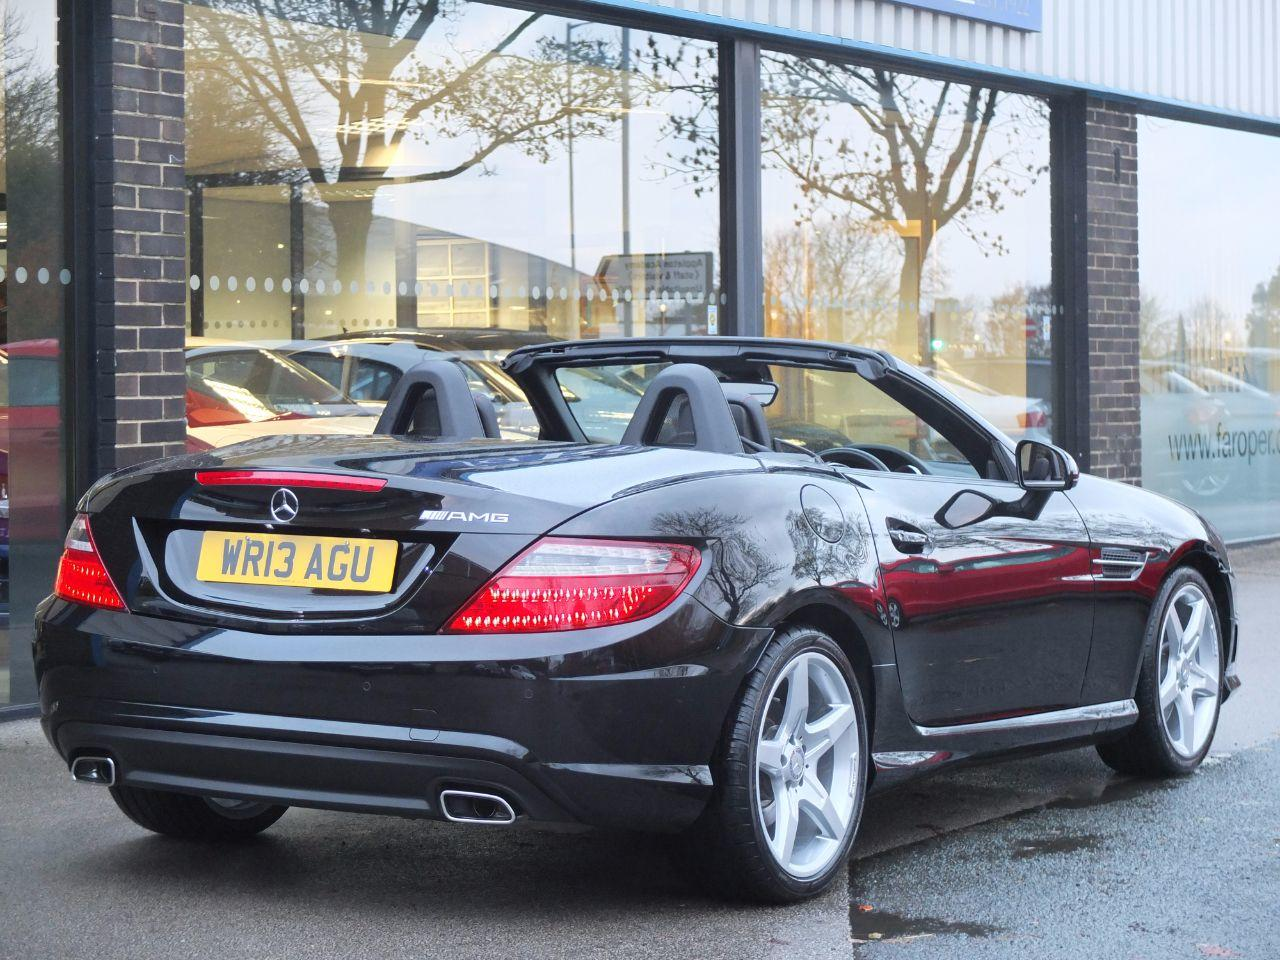 Mercedes-Benz SLK 2.1 250 CDI BlueEFFICIENCY AMG Sport Auto (Navigation,Airscarf,Pan Roof) Convertible Diesel Obsidian Black